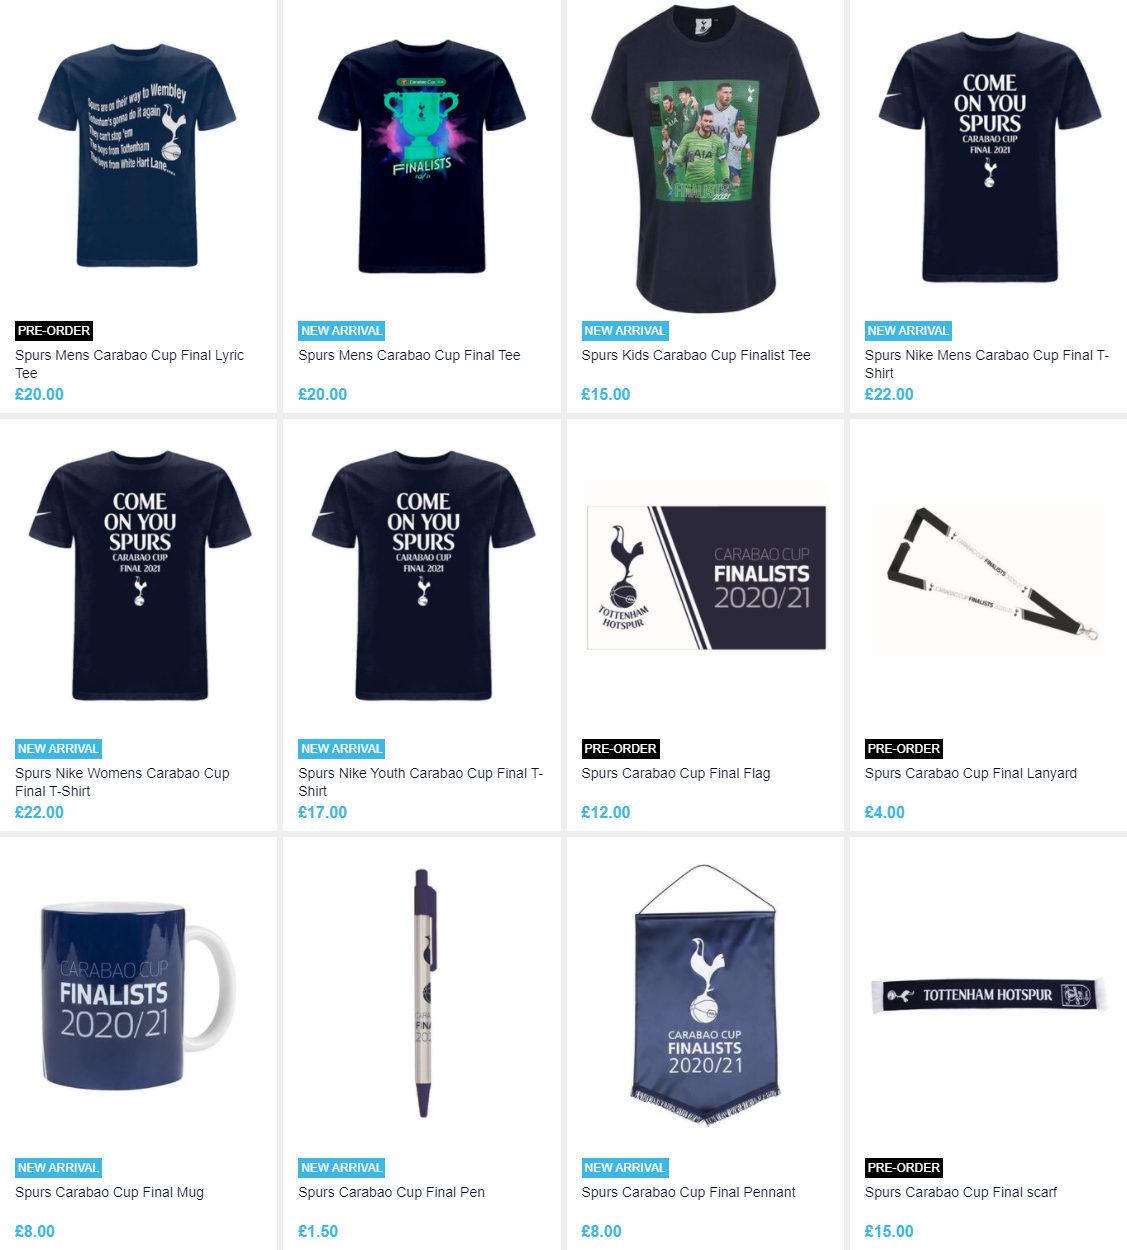 Tottenham Hotspur are selling Carabao Cup final merchandise